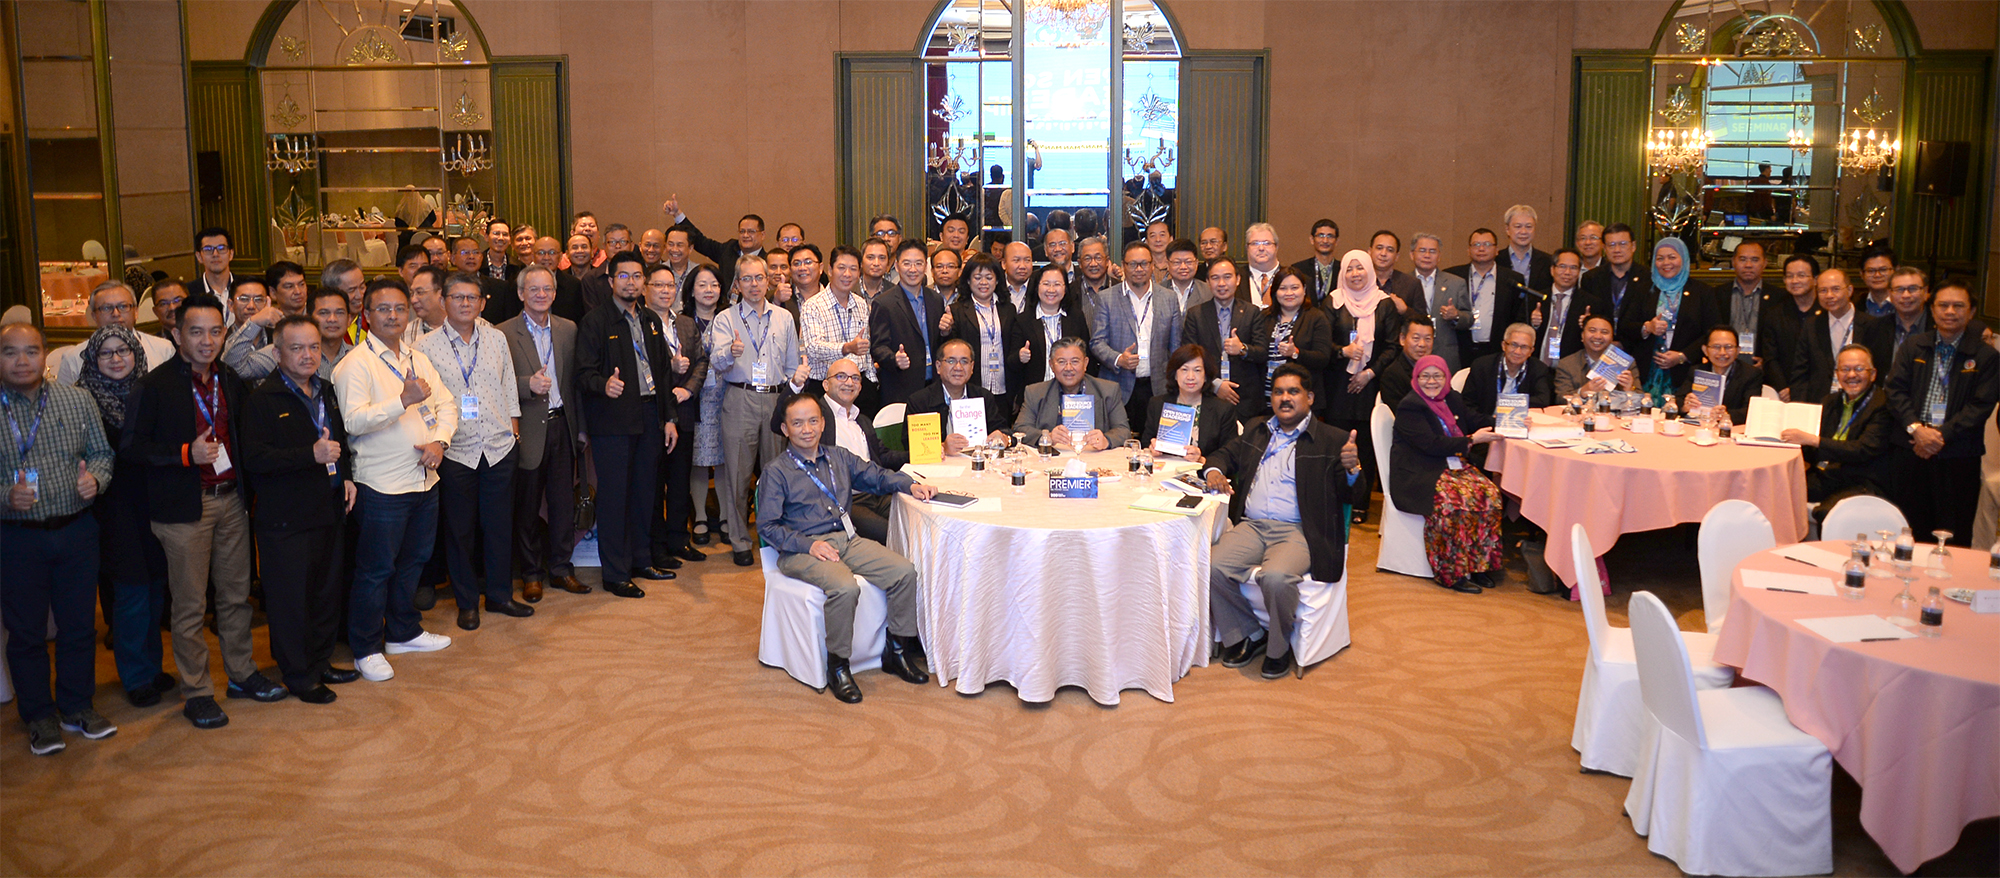 A group photo of senior civil servants attending the two-day leadership seminar.